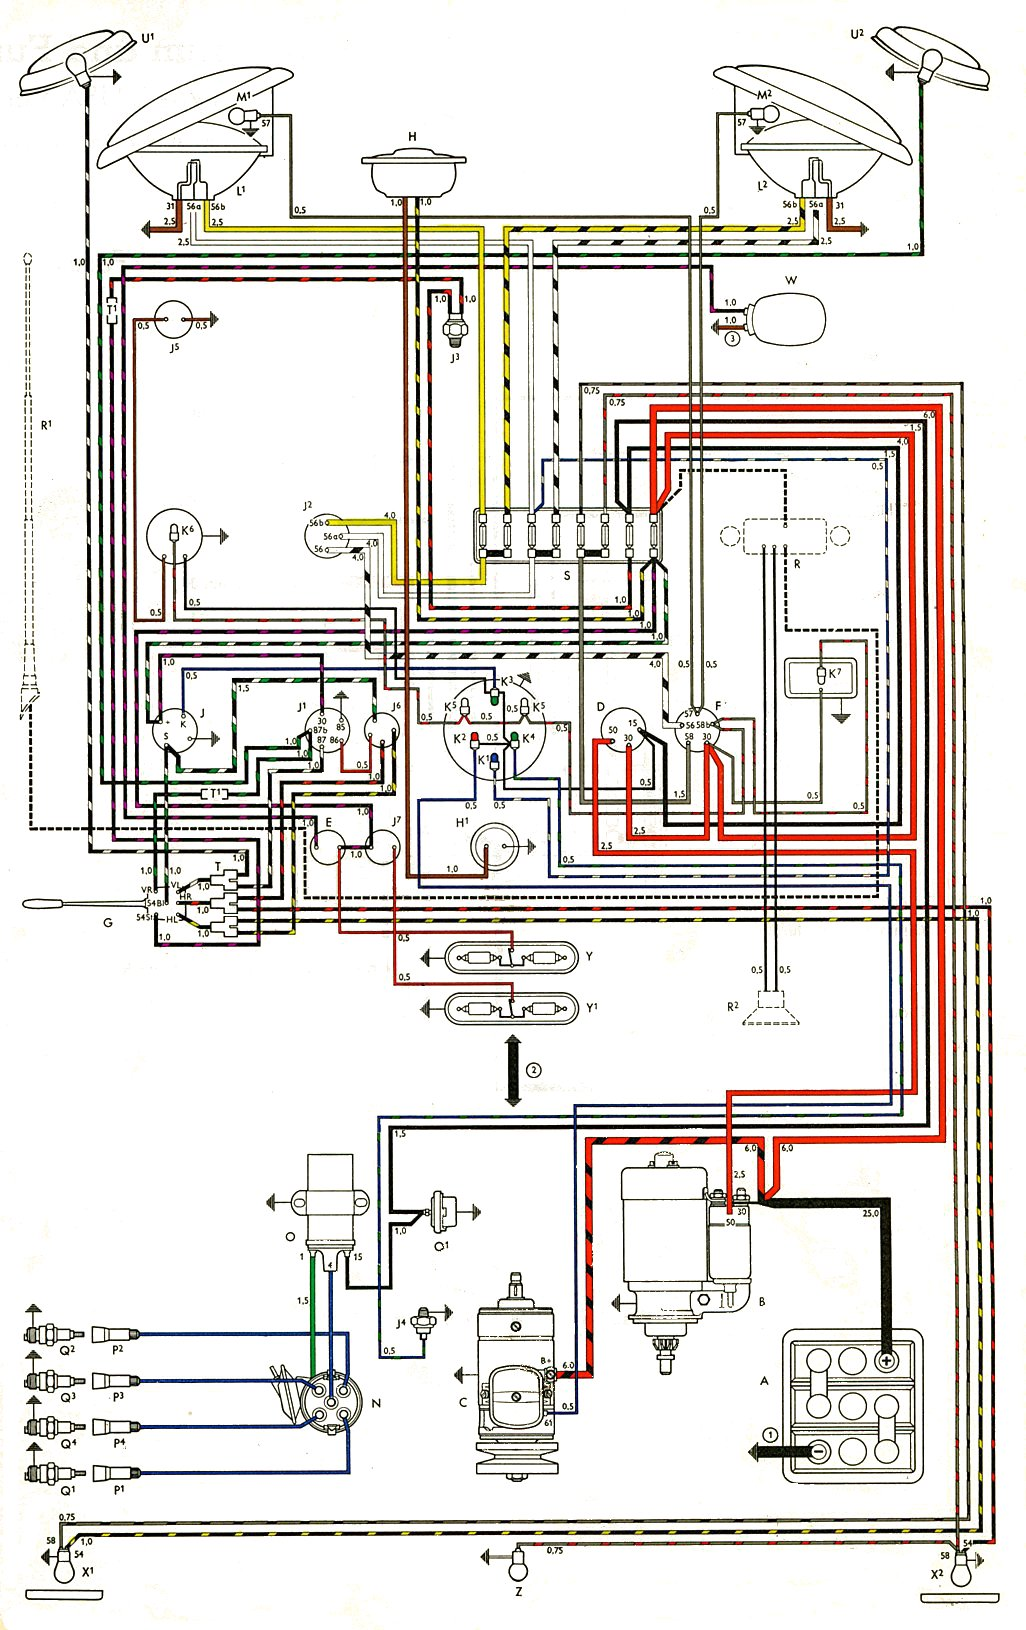 Vw Wiring Diagram For 1977 Worksheet And 1972 Super Beetle 73 Bus Diagrams Schematics U2022 Rh Schoosretailstores Com 1974